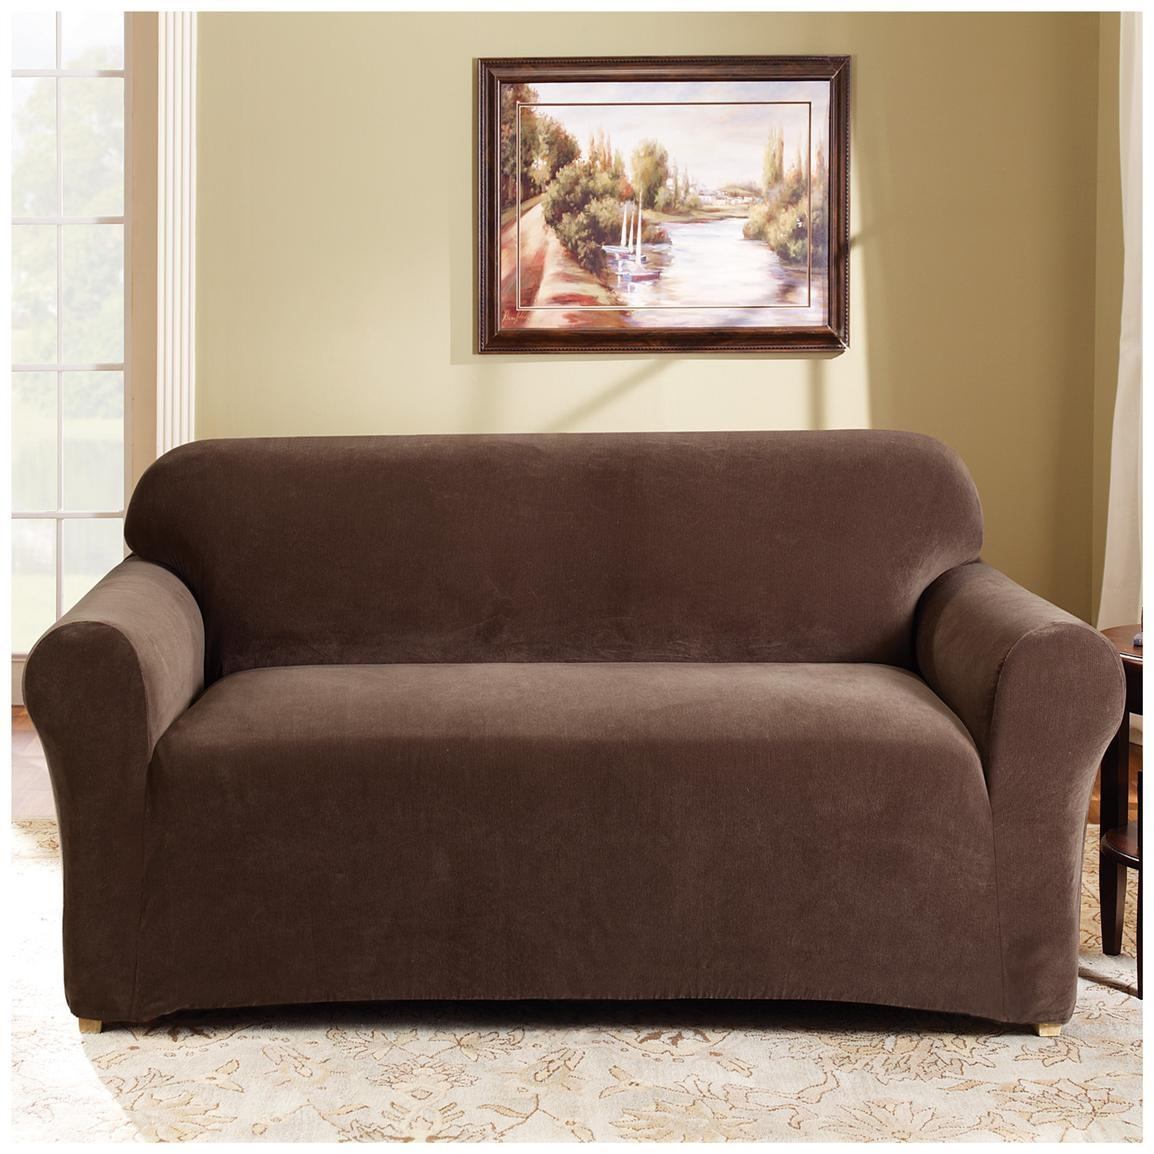 Featured Image of Sofa Loveseat Slipcovers